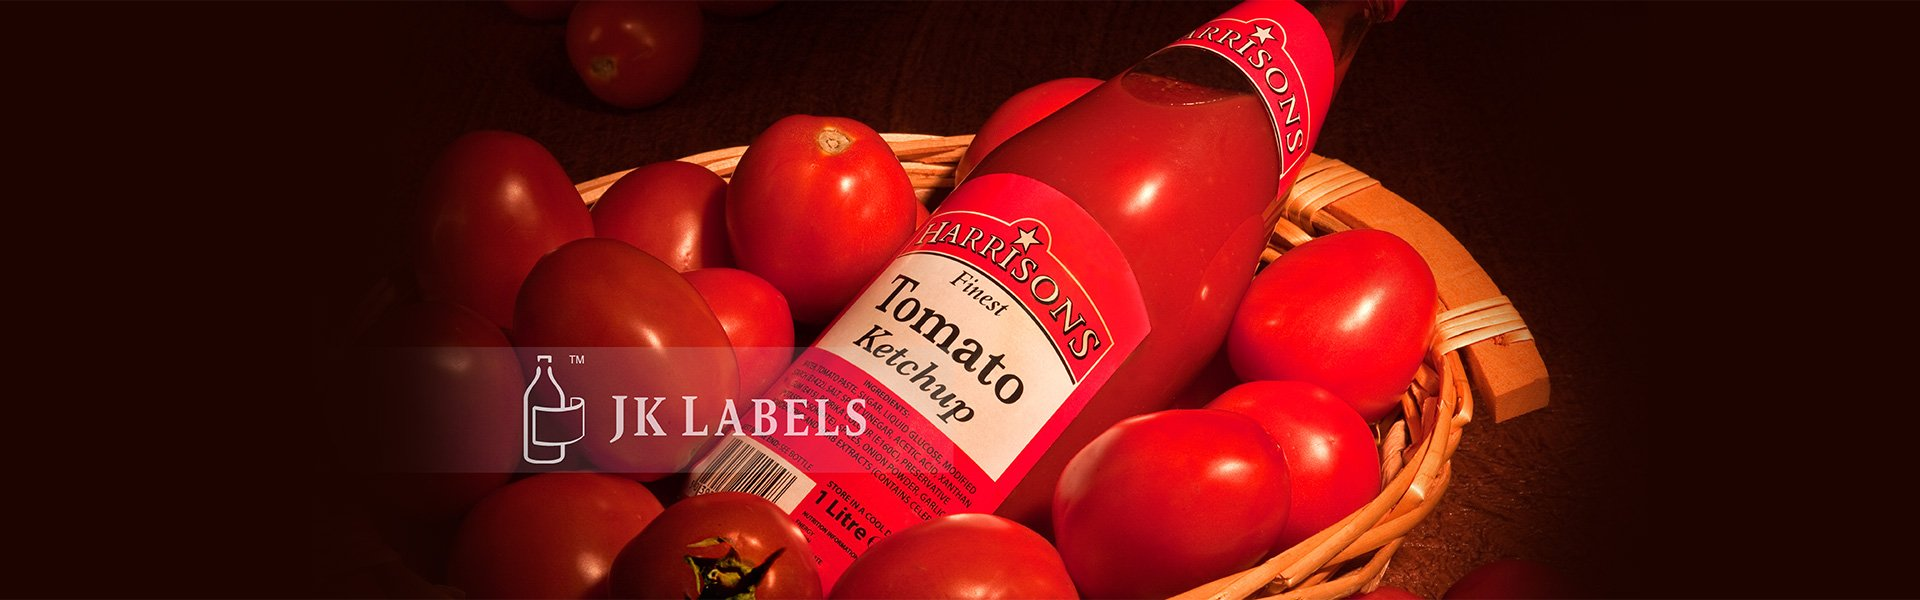 Customized labels for food products